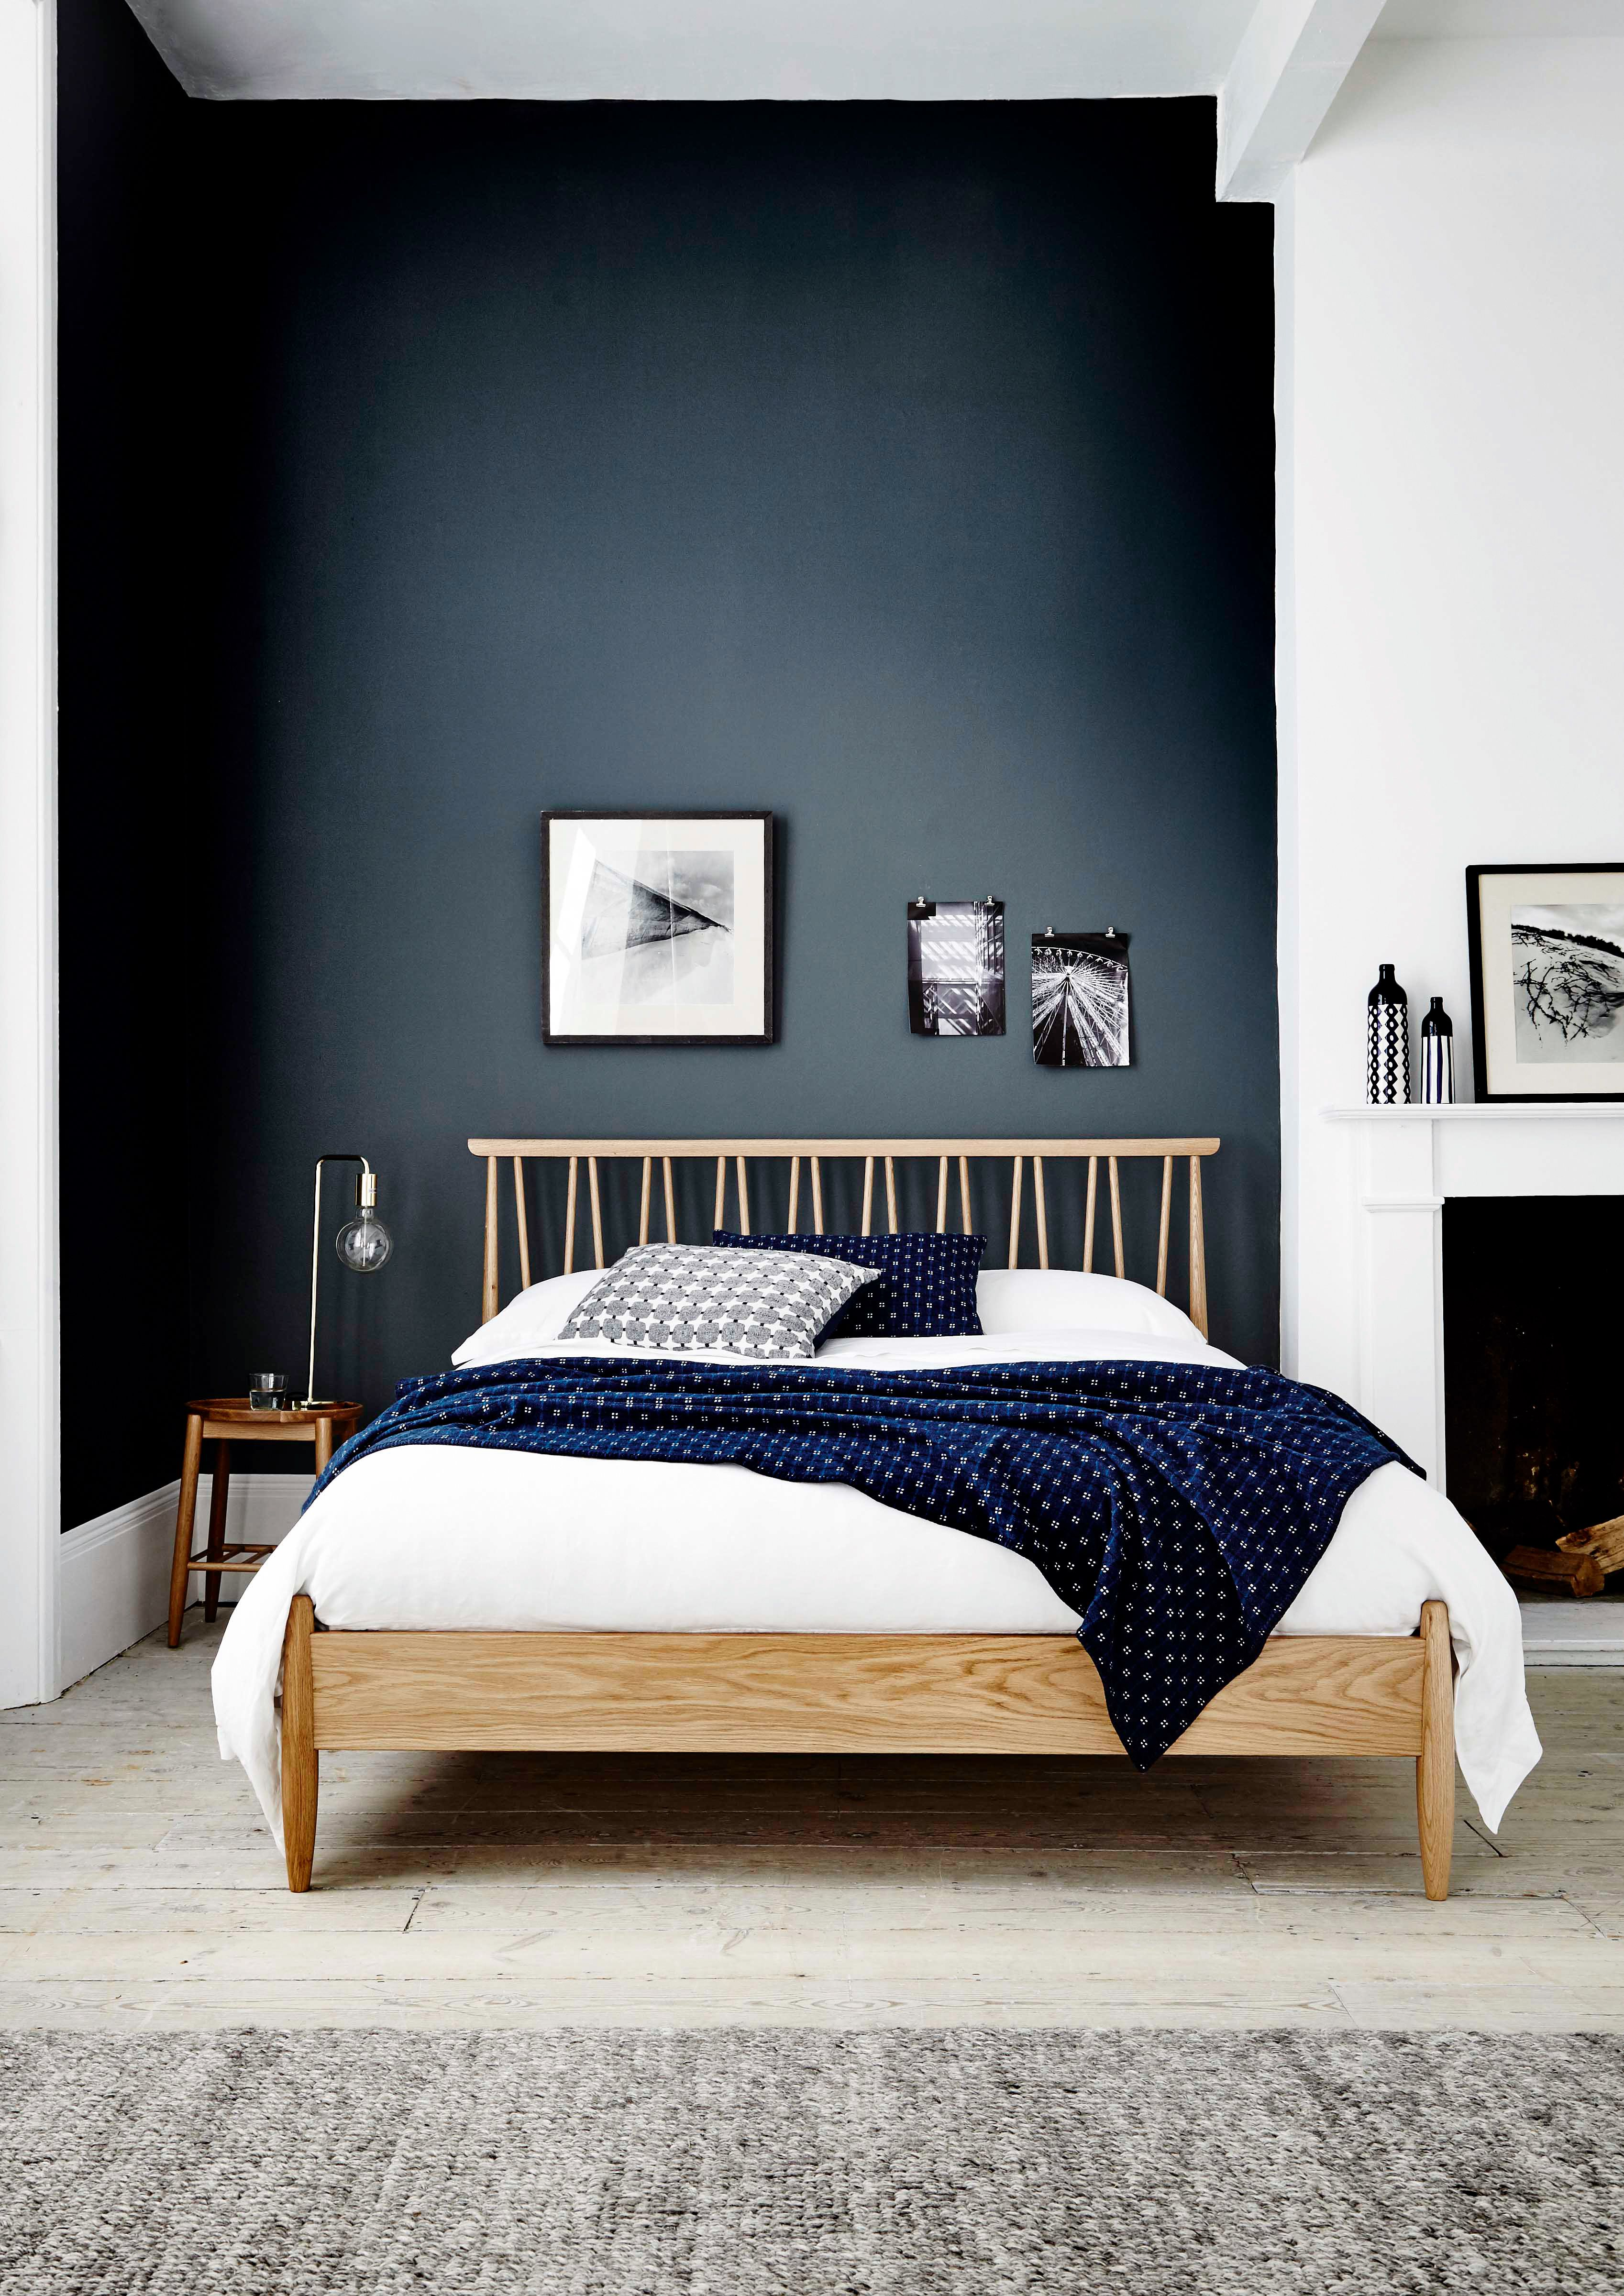 Nordic style interiors: 12 ways to get all those dark and dramatic vibes